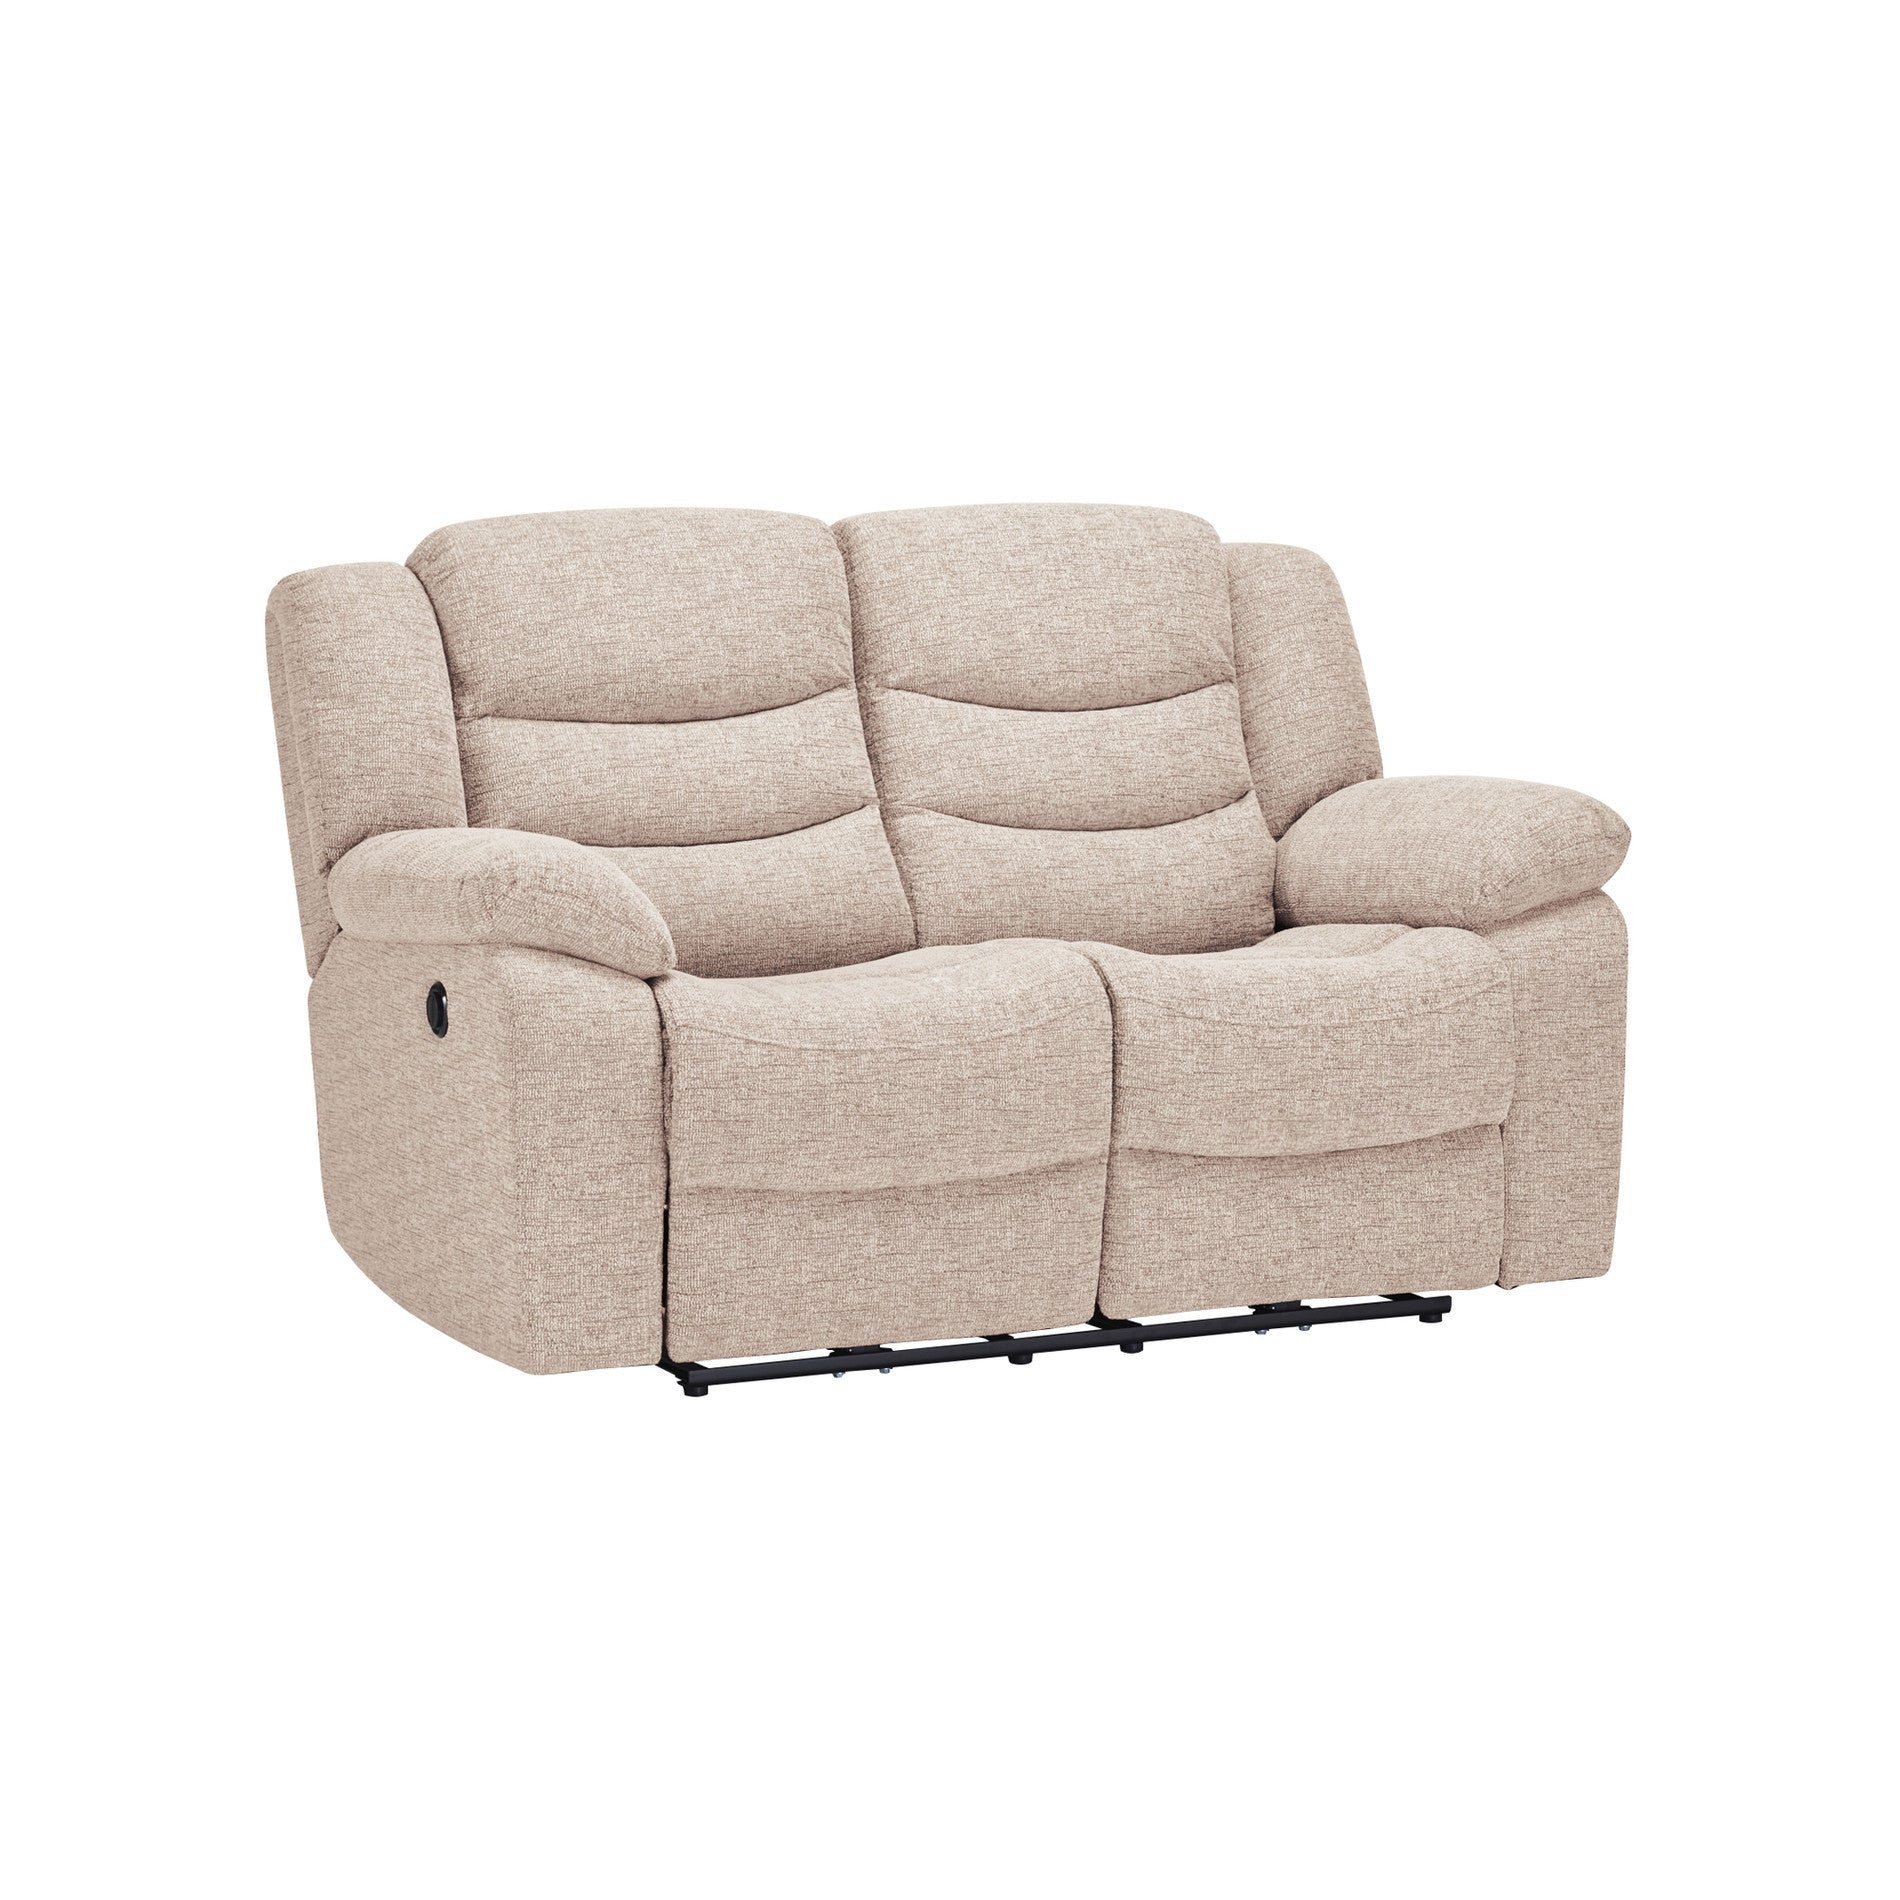 Grayson 2 Seater Electric Recliner Sofa Oatmeal Fabric – Sofa